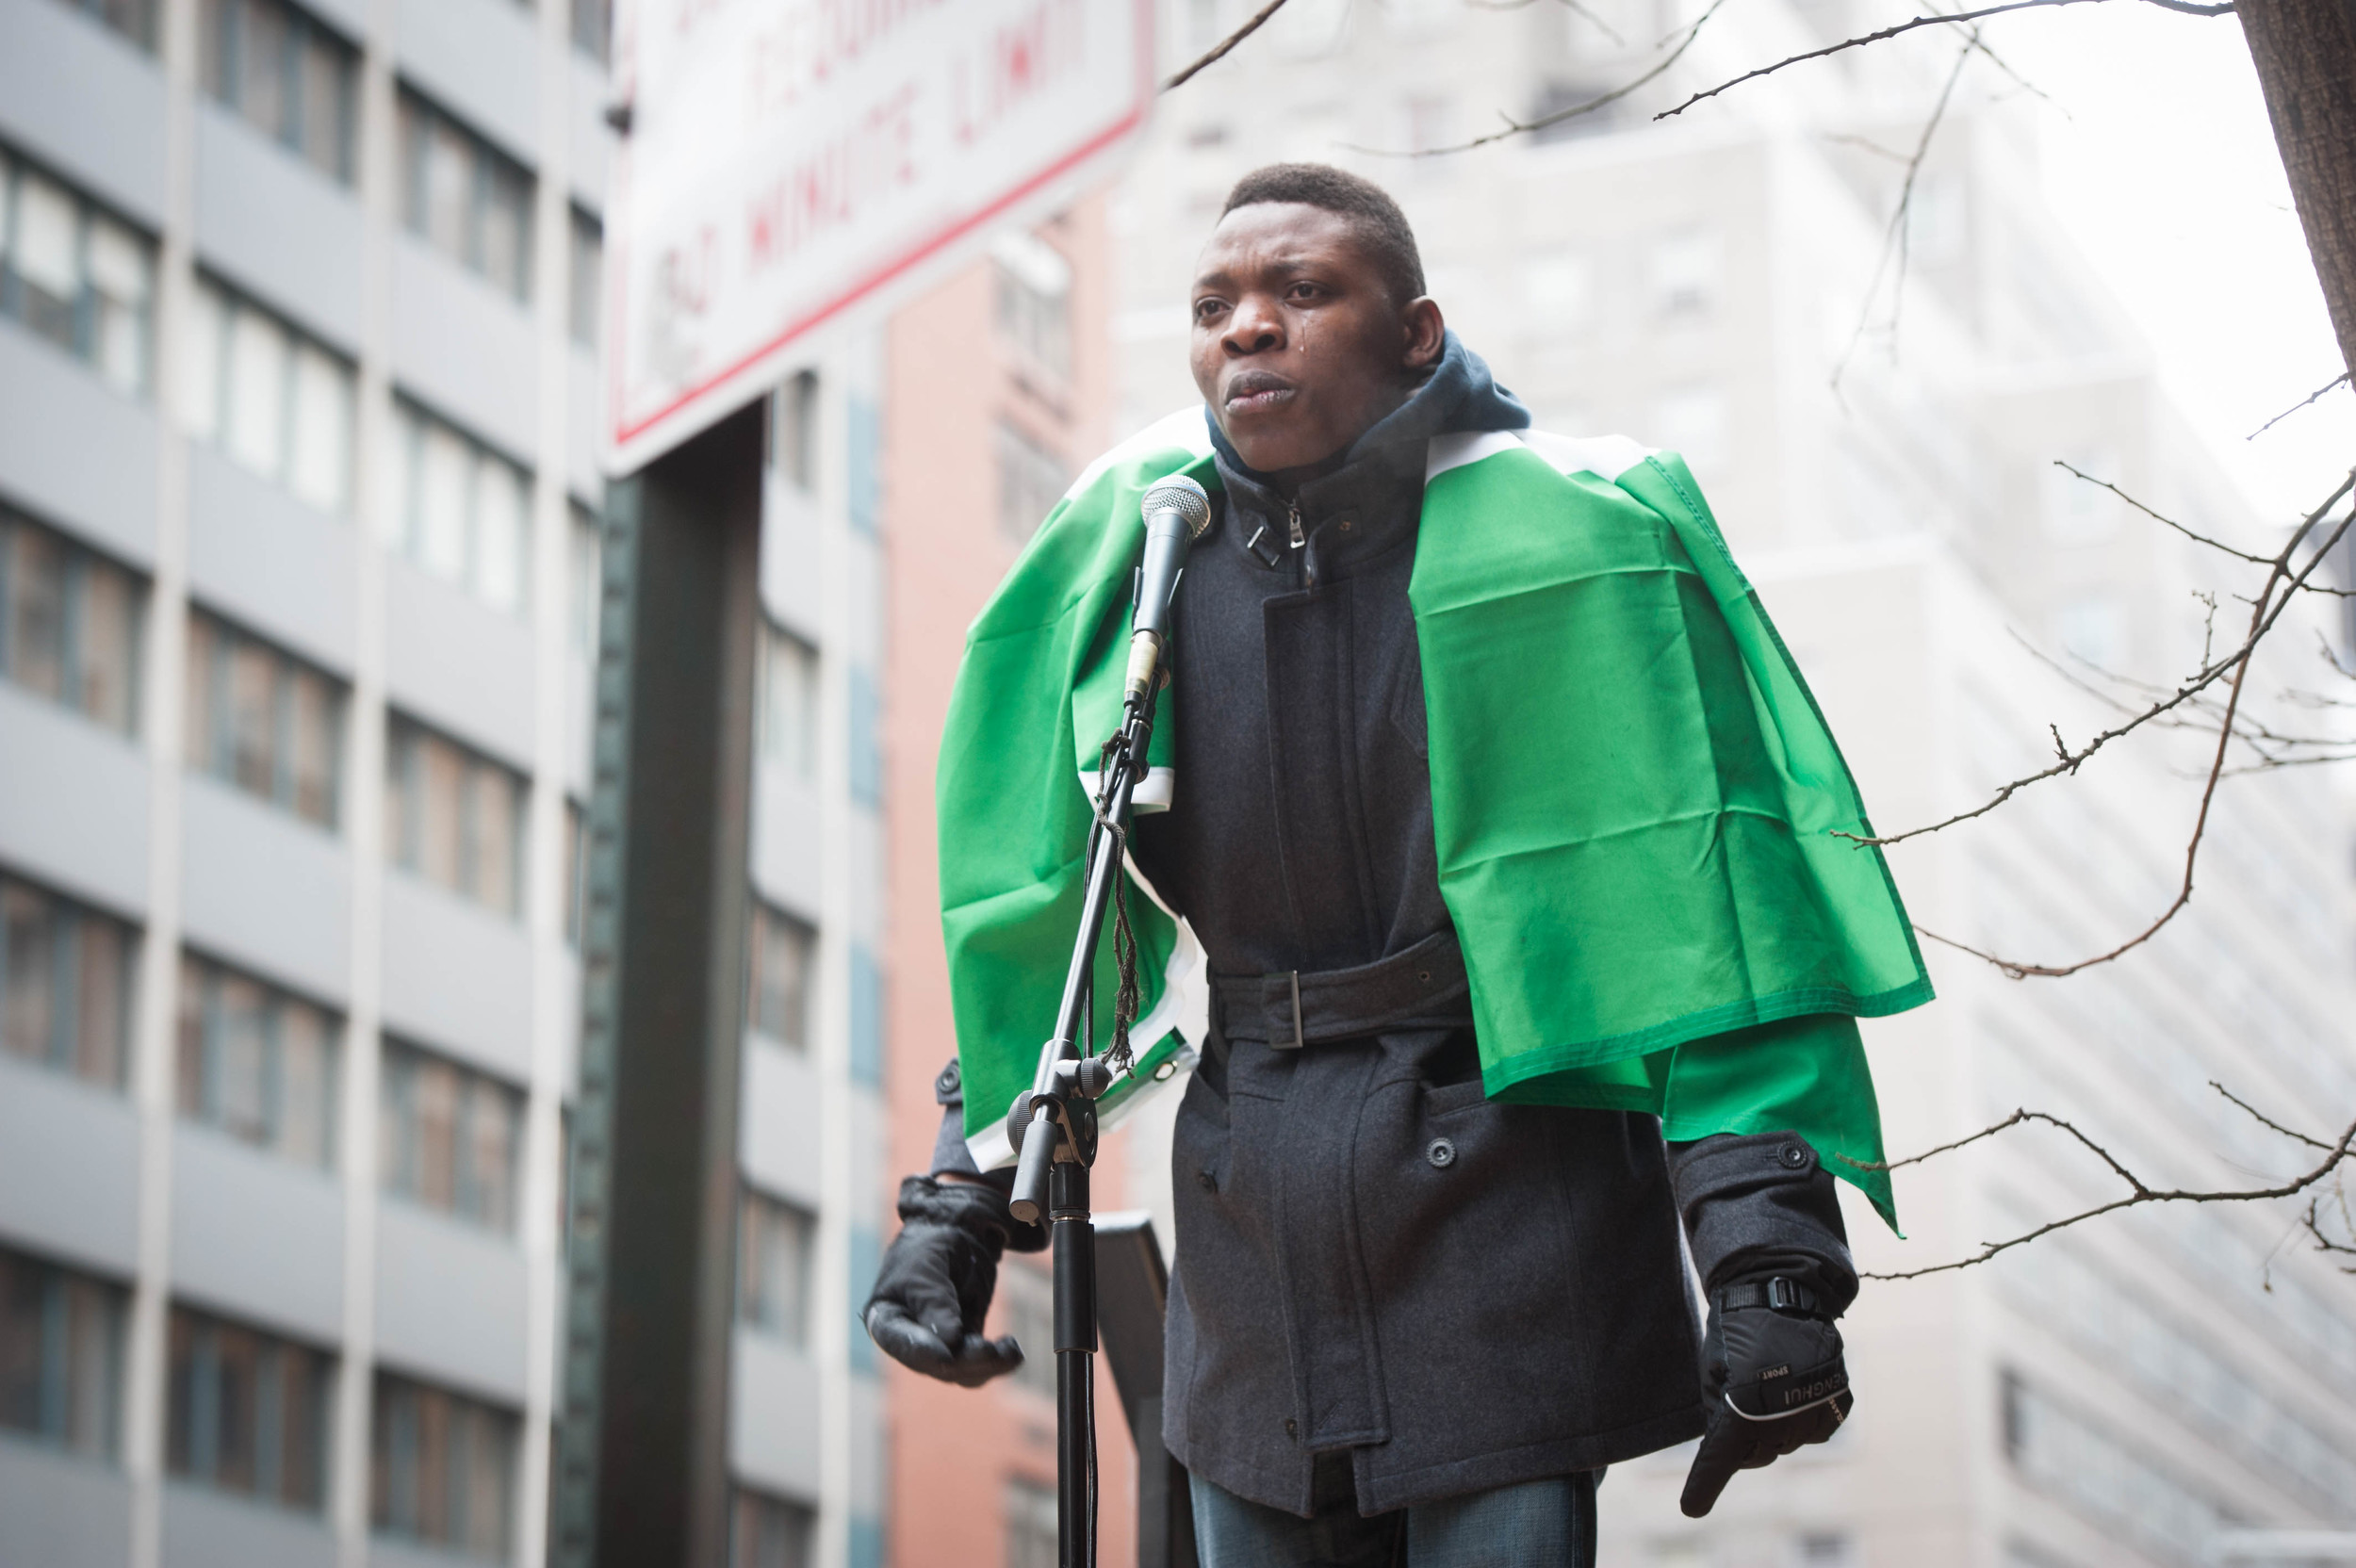 """(March 7th 2015) Activist Michael Ighodaro speaks of the trials LGBT face in Nigeria in front of the Consulate General of Nigeria during a demonstration on Nigerian Global Day of Action.""""I am Nigerian by birth, just as I am gay by birth. I was born gay. And I am now American, grateful to find safety and support here but far from the home where I belong, because my own government says who I am and who I love is a crime."""""""